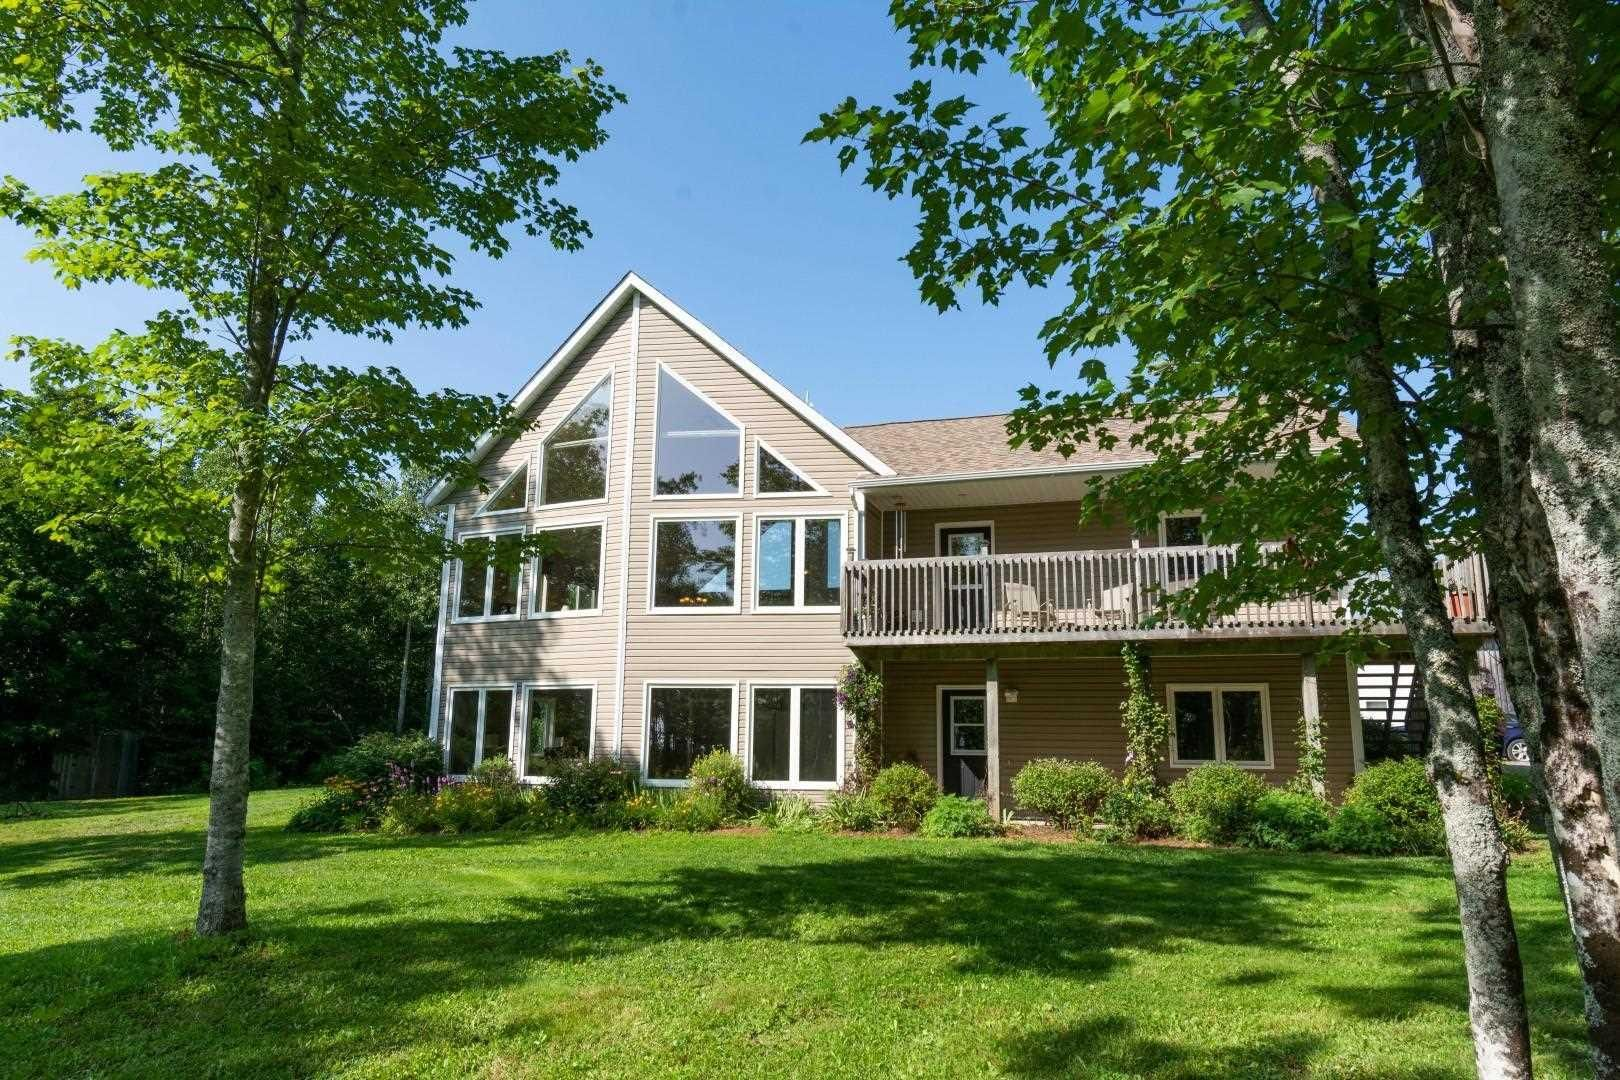 Main Photo: 505 Brow of Mountain Road in Aylesford Mountain: 404-Kings County Residential for sale (Annapolis Valley)  : MLS®# 202121492